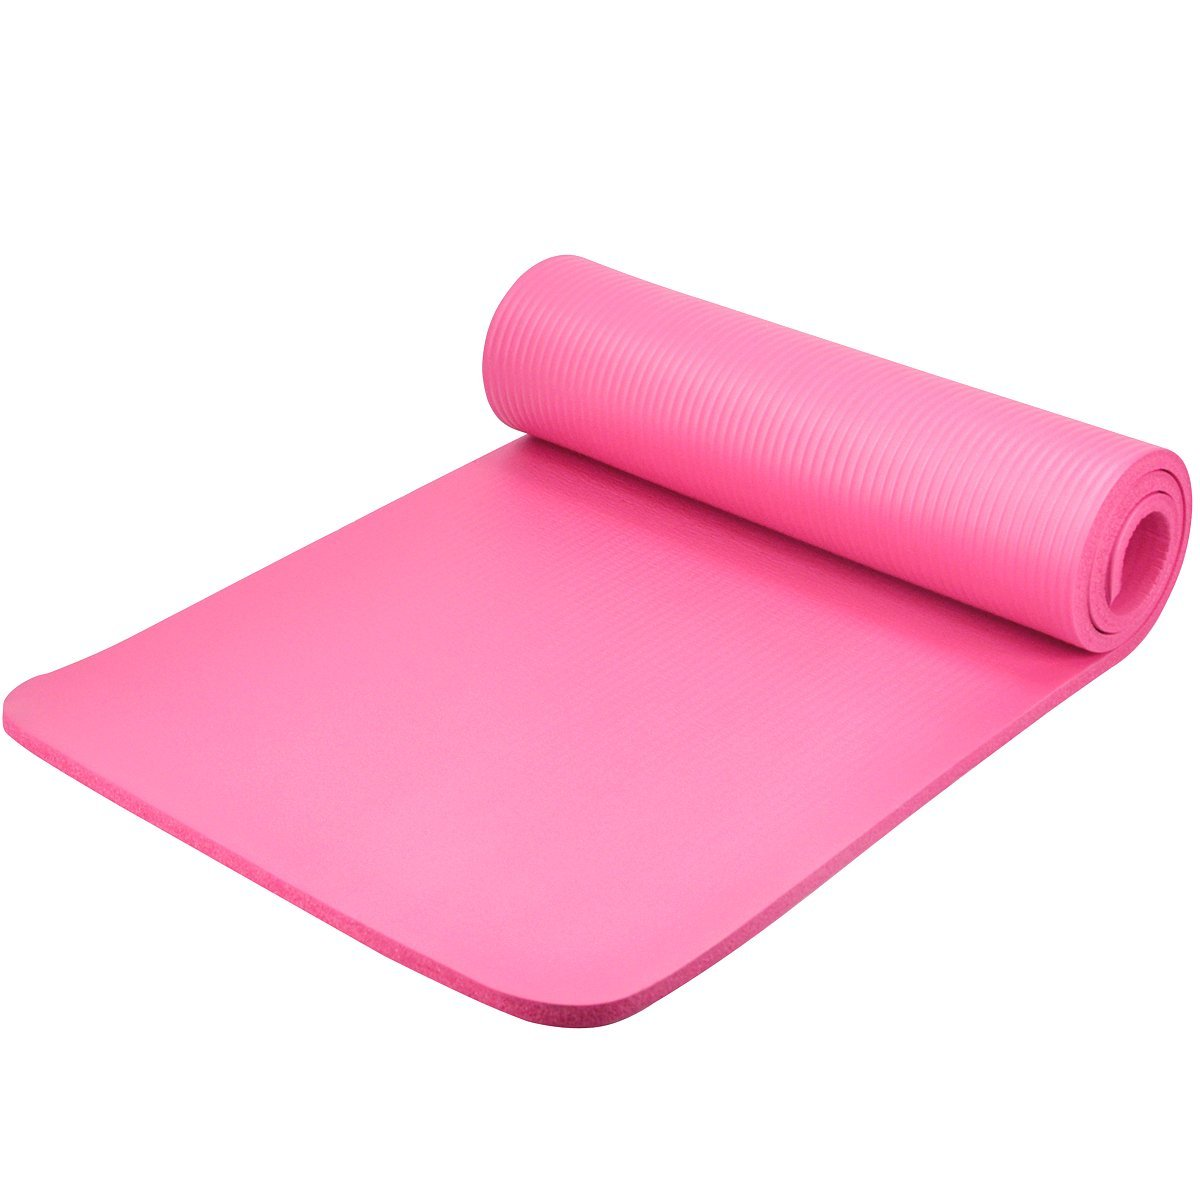 Foam Exercise Yoga Mat Boxing Fitness Gym Training Pilates